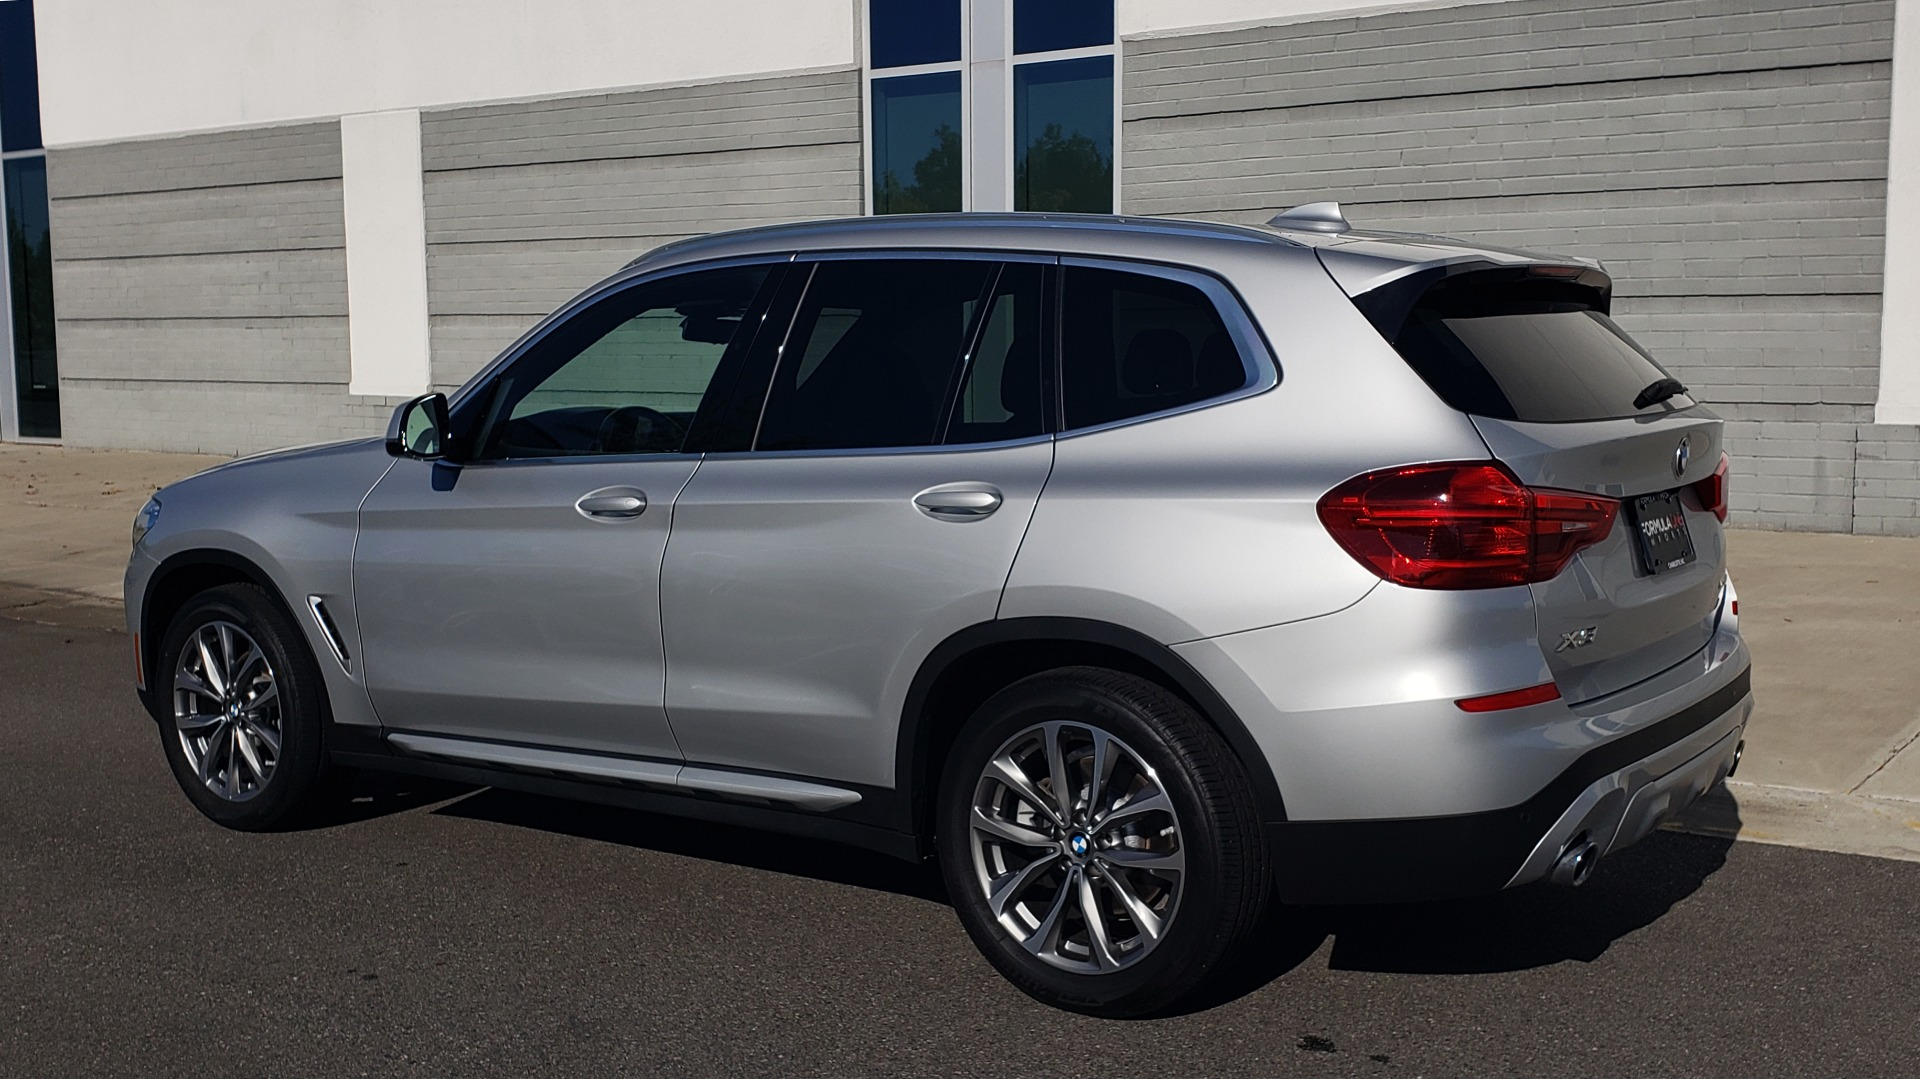 Used 2019 BMW X3 XDRIVE30I / DRVR ASST / PANO-ROOF / HTD STS / REARVIEW for sale $41,995 at Formula Imports in Charlotte NC 28227 5